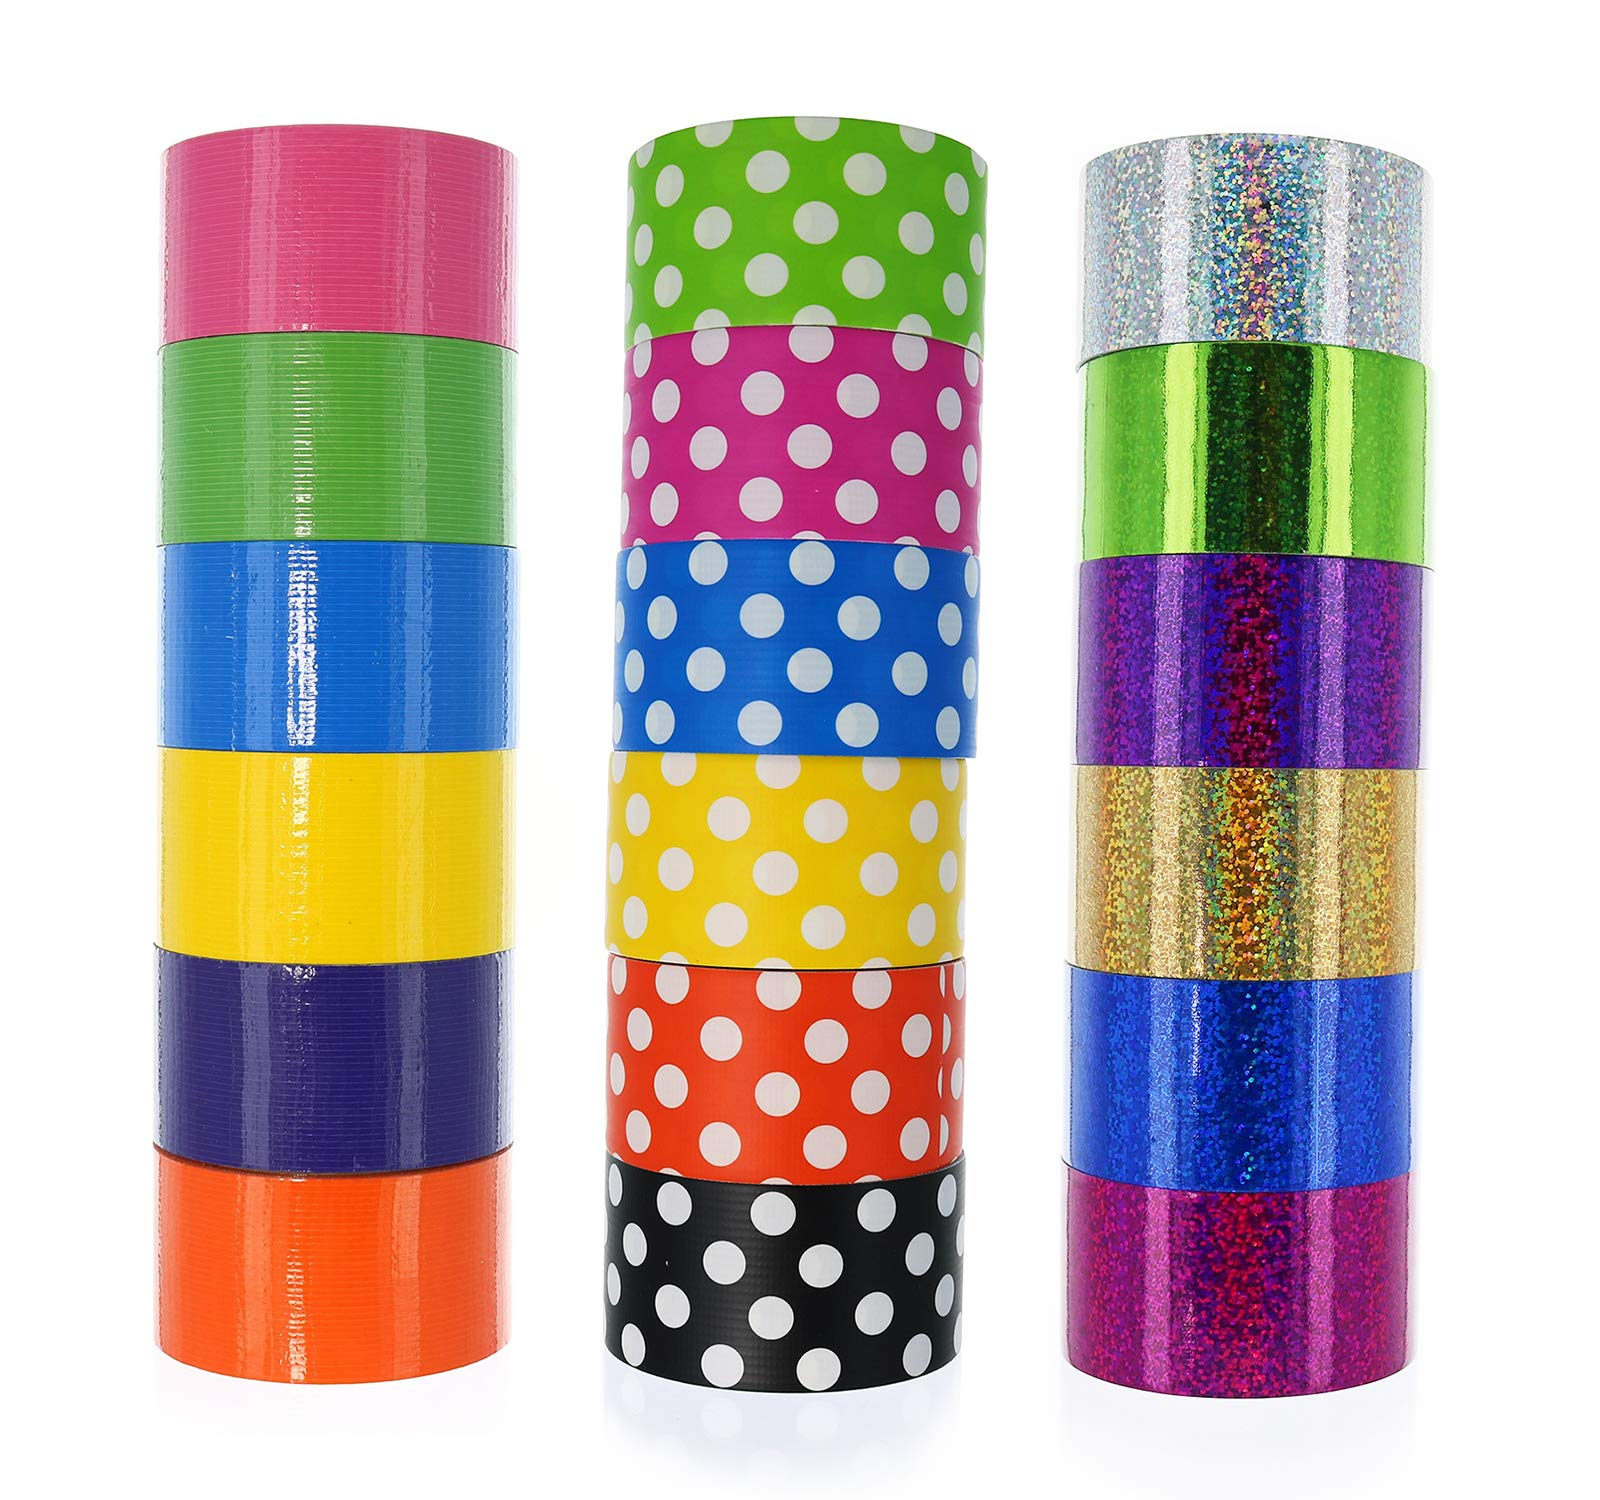 GIFTEXPRESS 18 Assorted Colored Duct Tapes, Holographic Polka Dot Duct Tapes - Multi Purposes Bright Colors Tapes Great for DIY Art Home School Office Colors: Pink Purple red Orange Gold ect. 2'' Roll